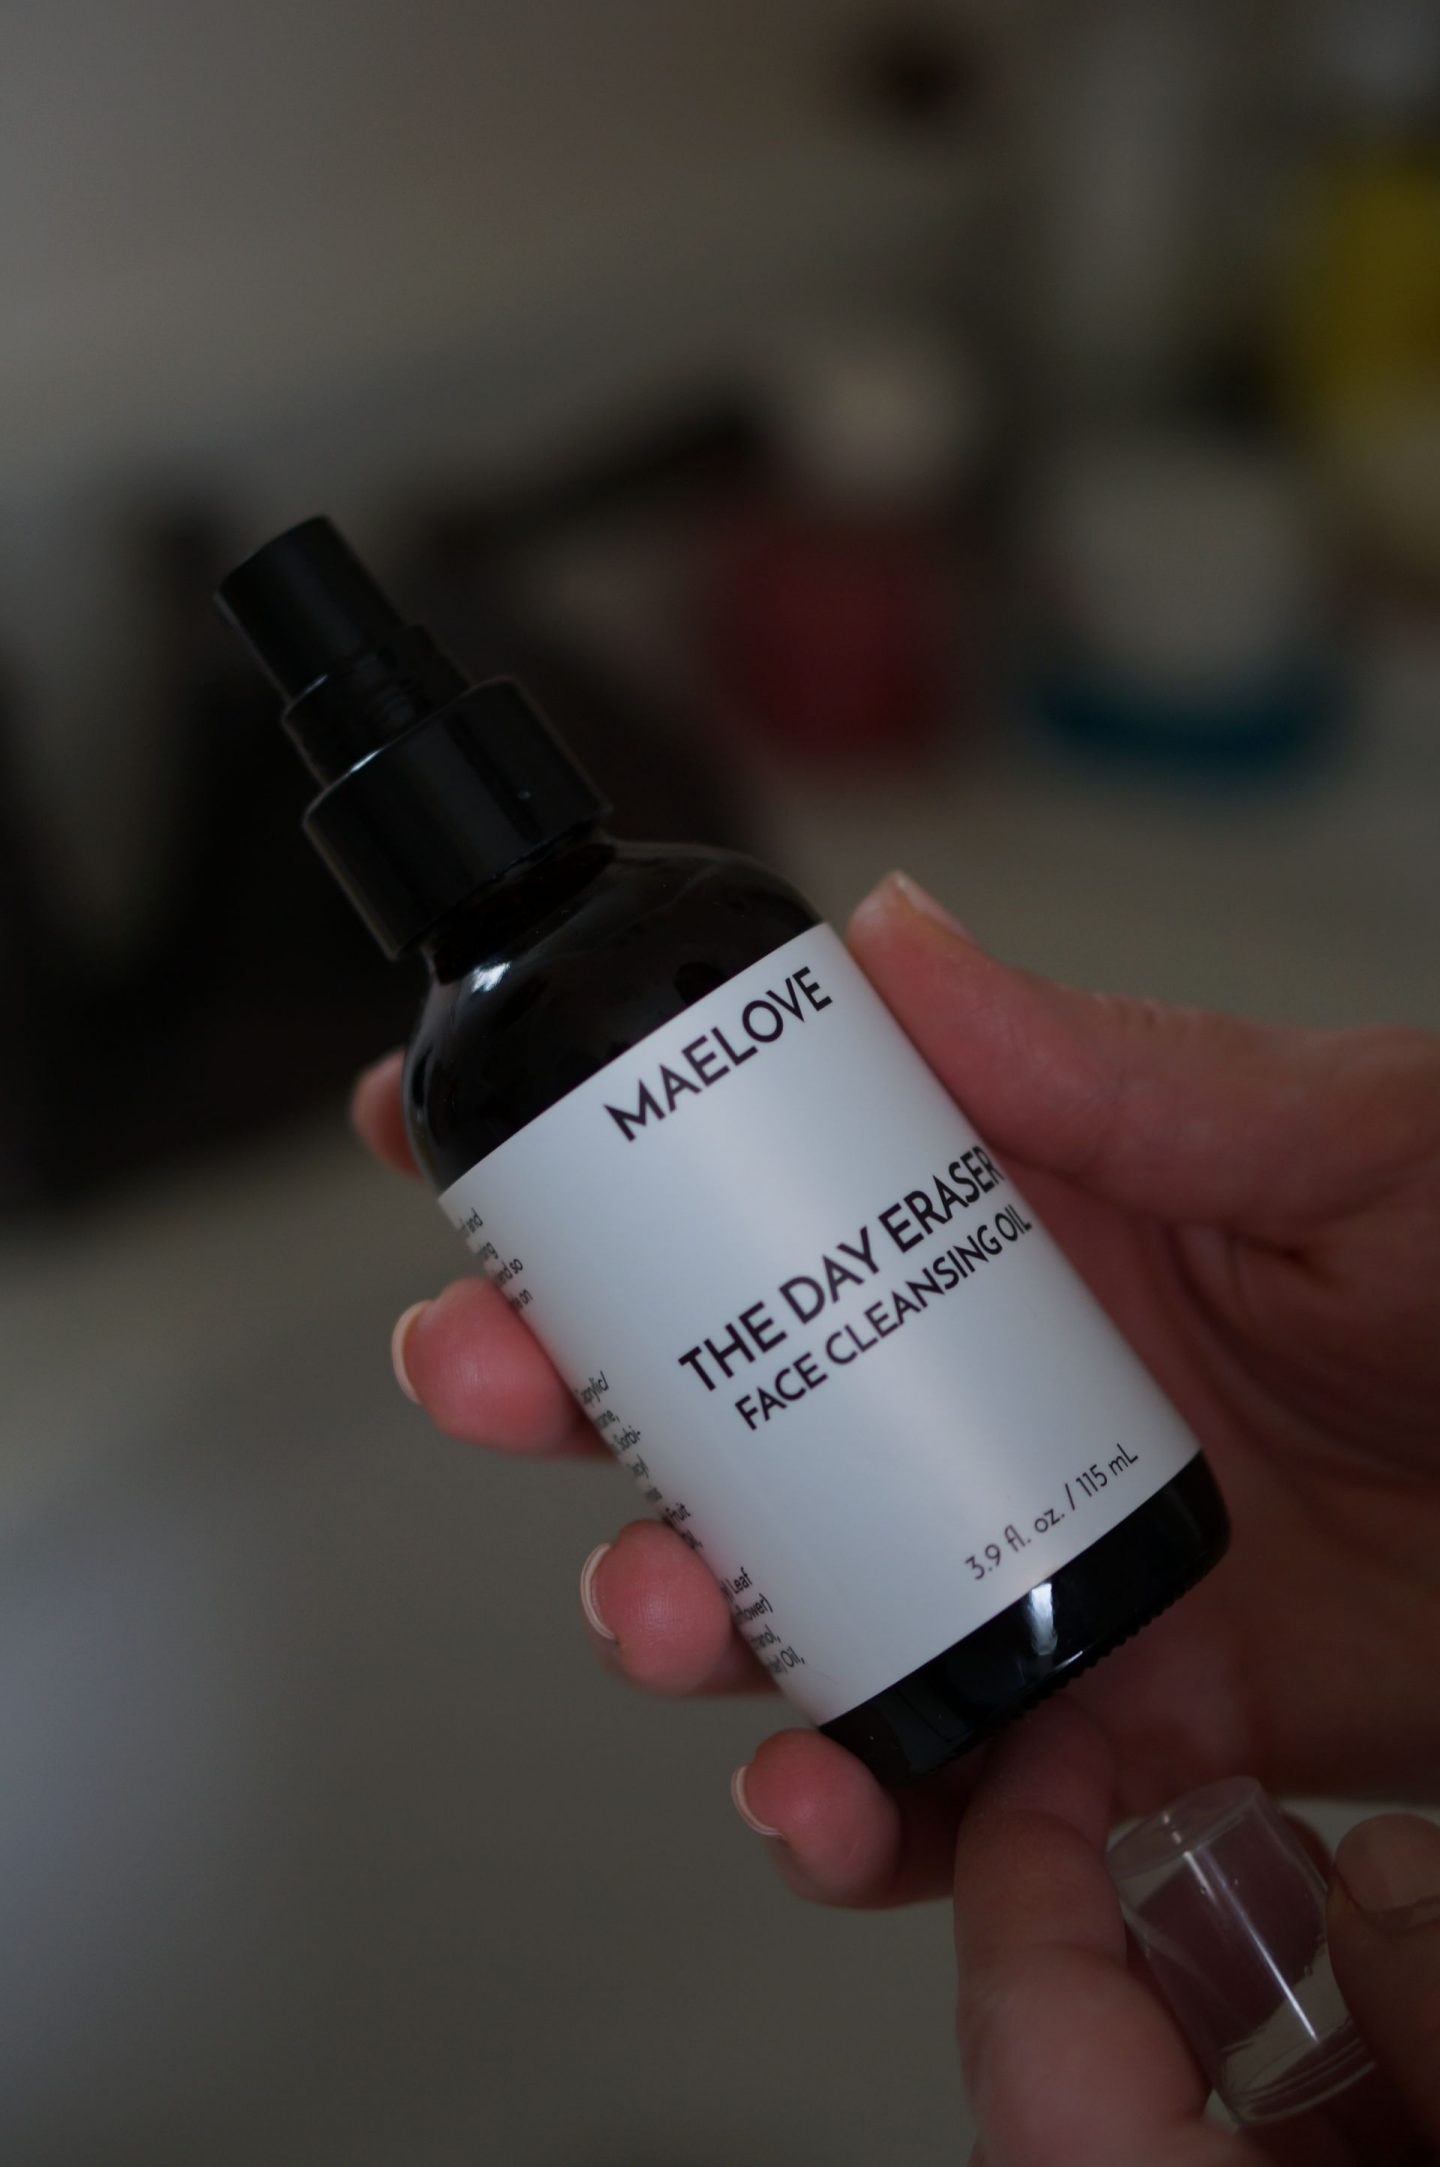 Rebecca Lately shares her night time skincare routine and Maelove Skincare review of the Fade Scar-Spots Kit. This brand is affordable and effective!